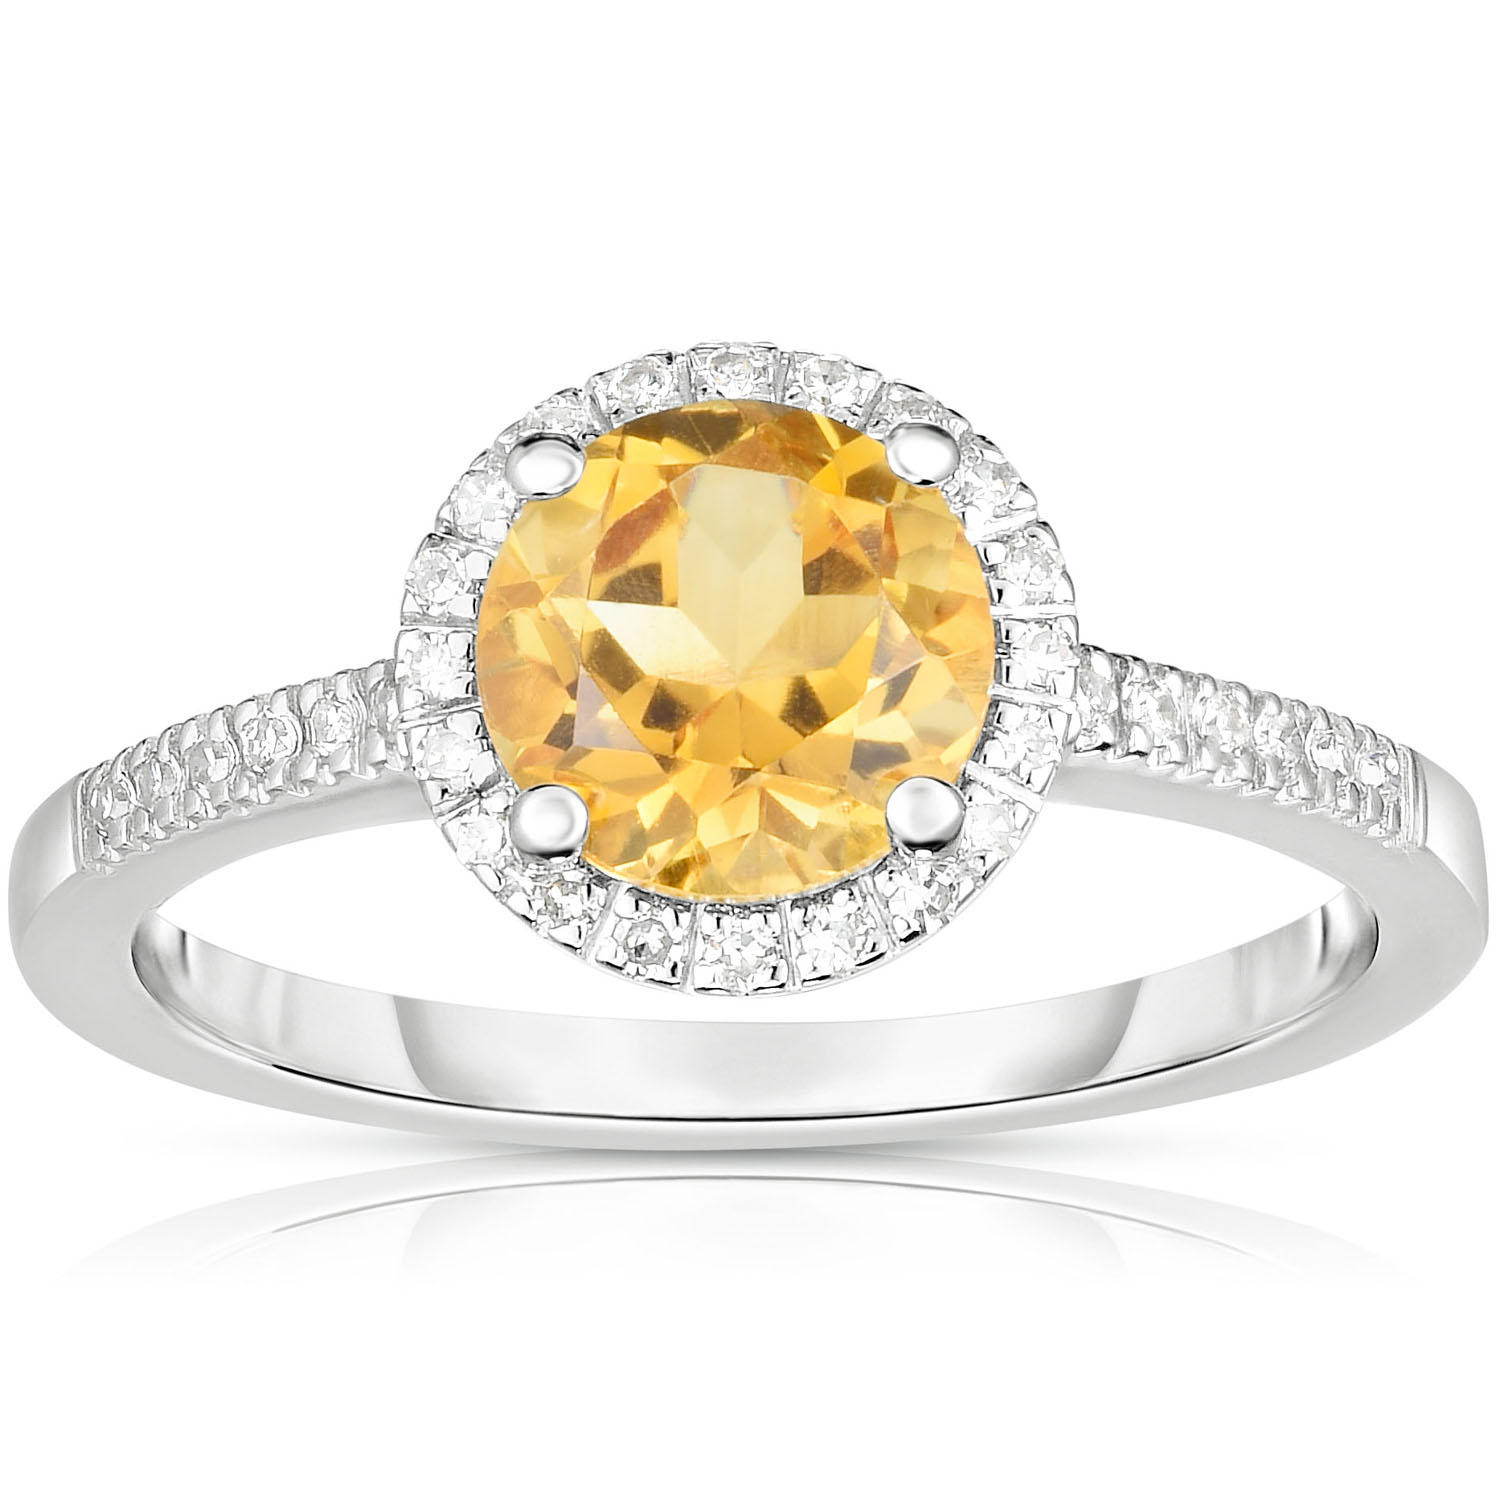 Round Citrine Ring with Diamonds in 14K White Gold